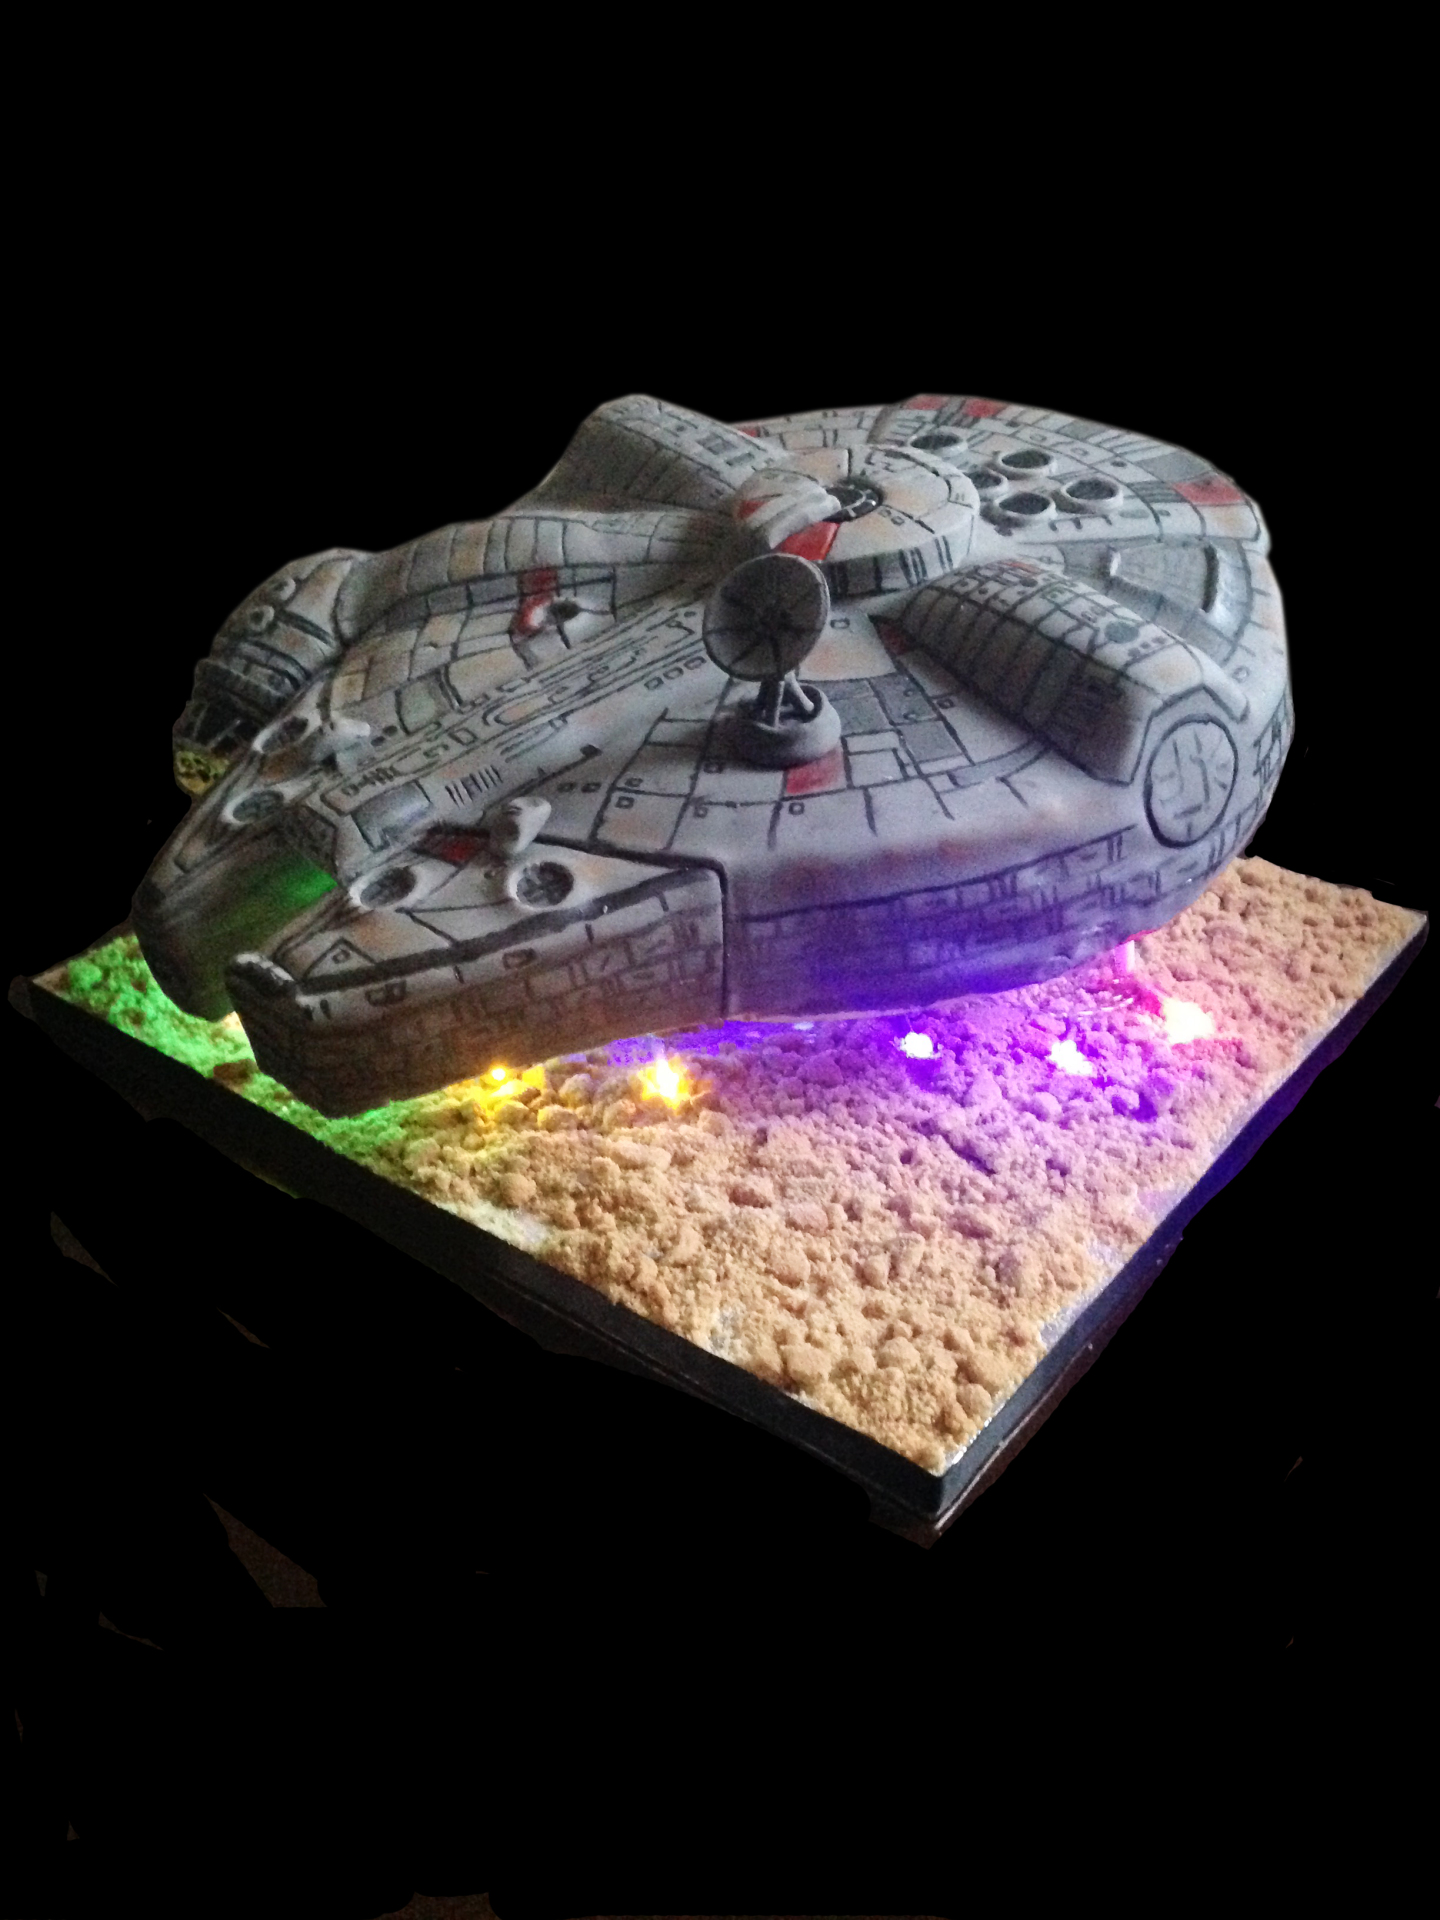 millennium falcon cake by NJL Creations